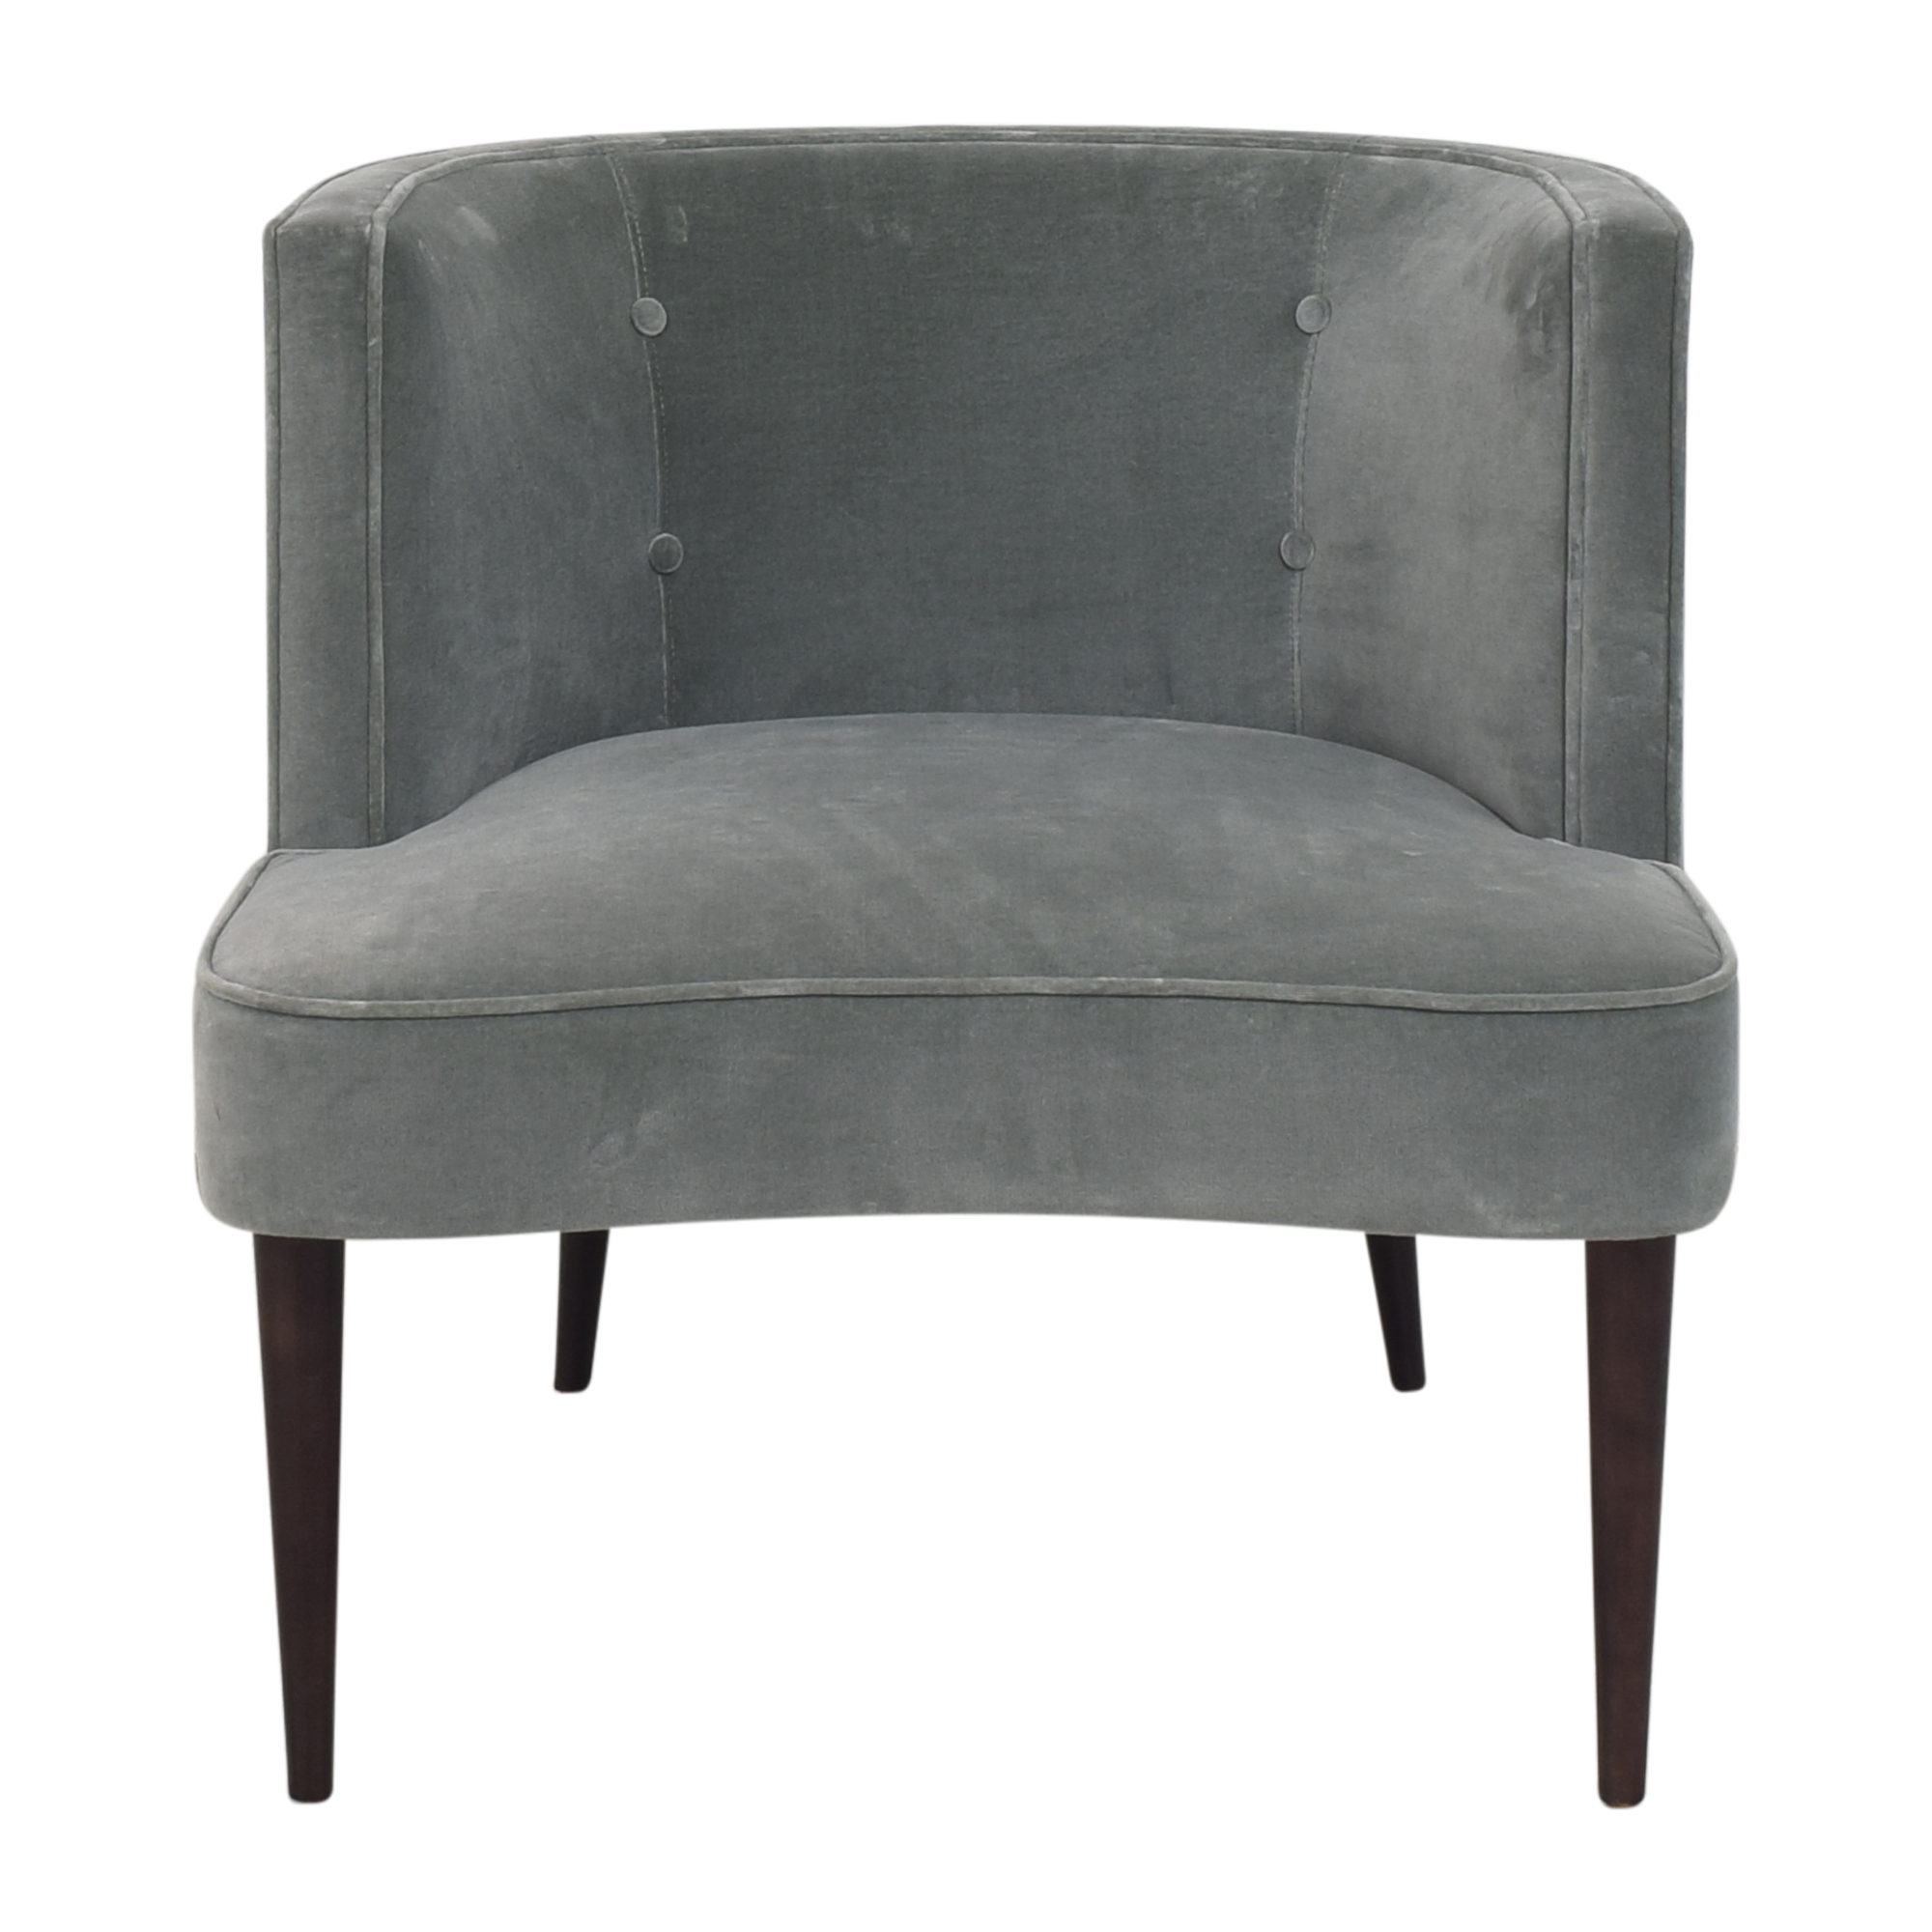 Room & Board Room & Board Chloe Accent Chair price